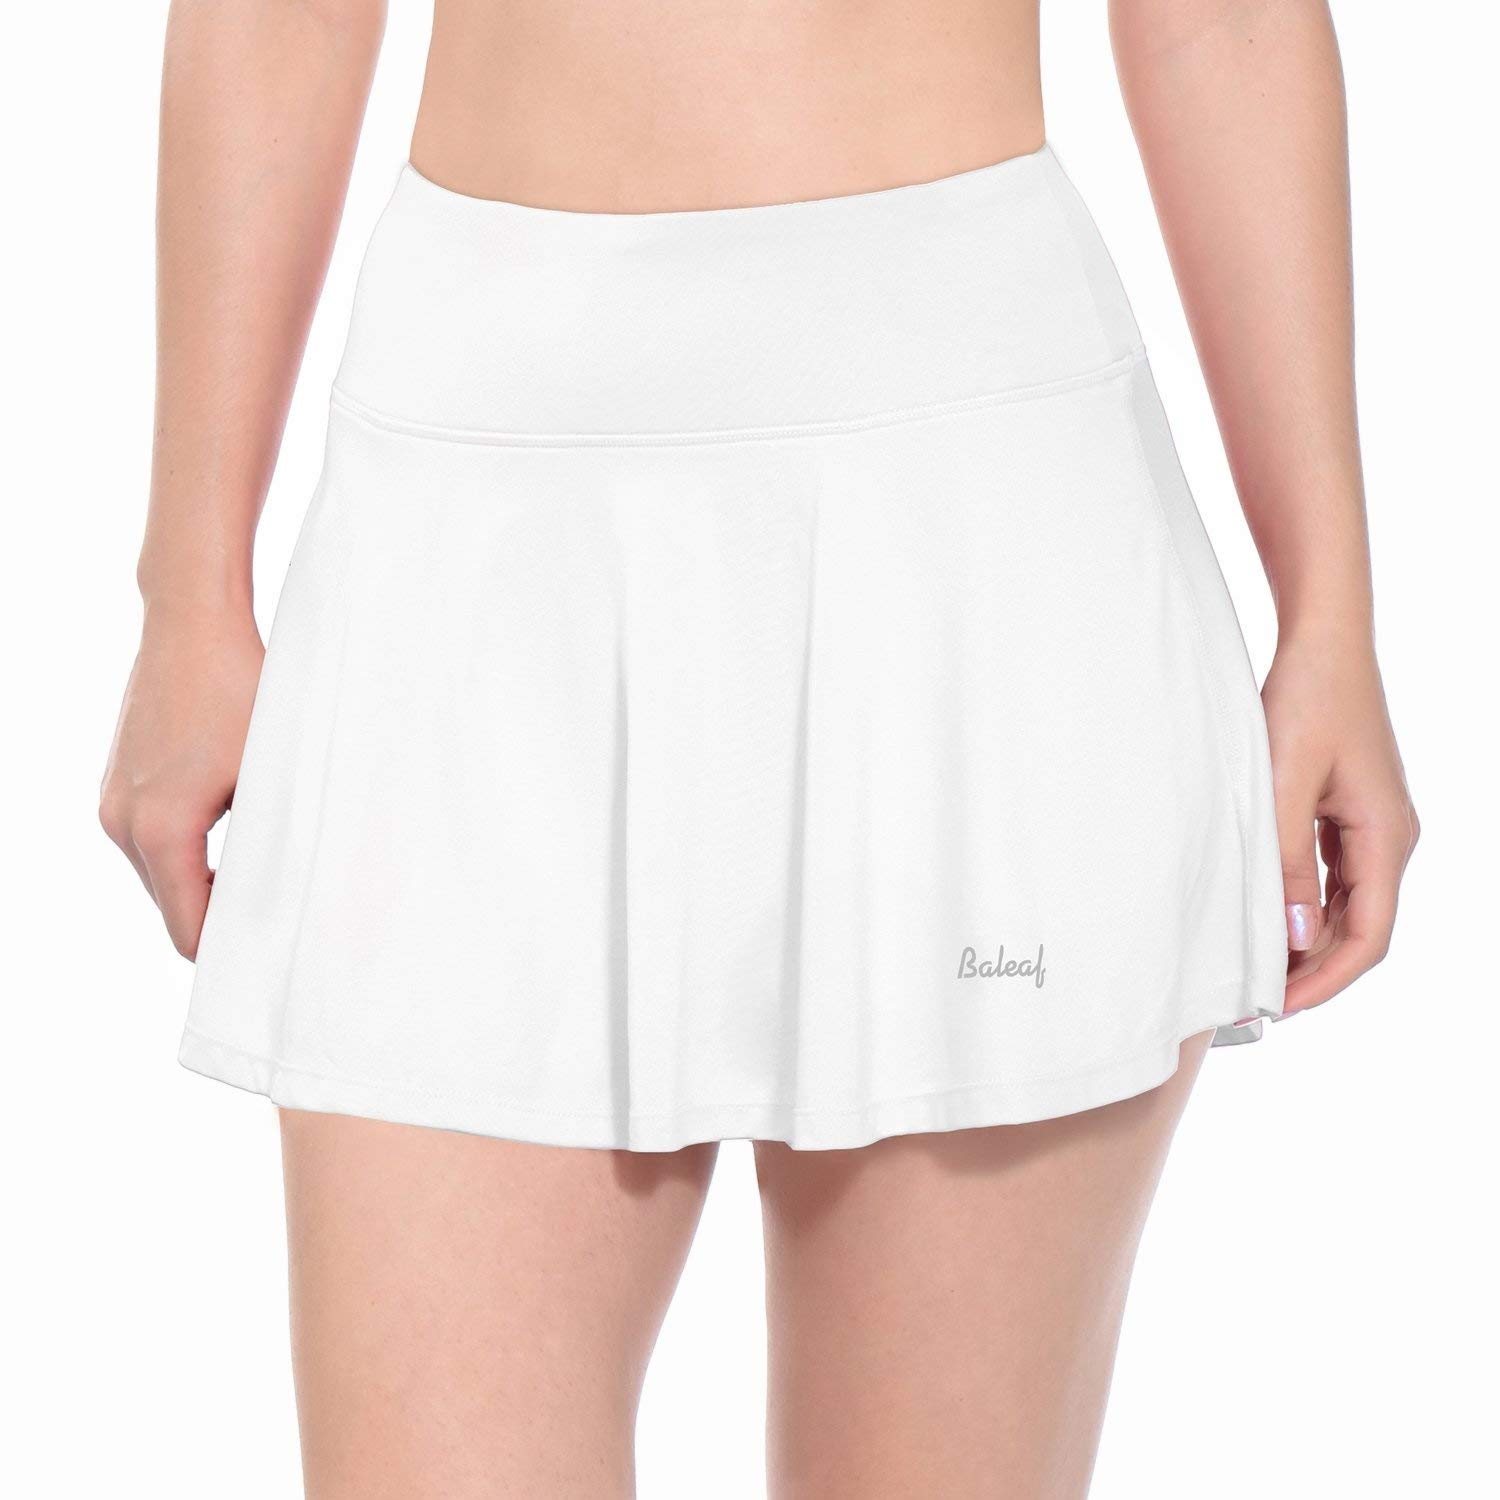 Baleaf Women's Athletic Golf Skirt Tennis Skort Pleated with Pockets White Size XL by Baleaf